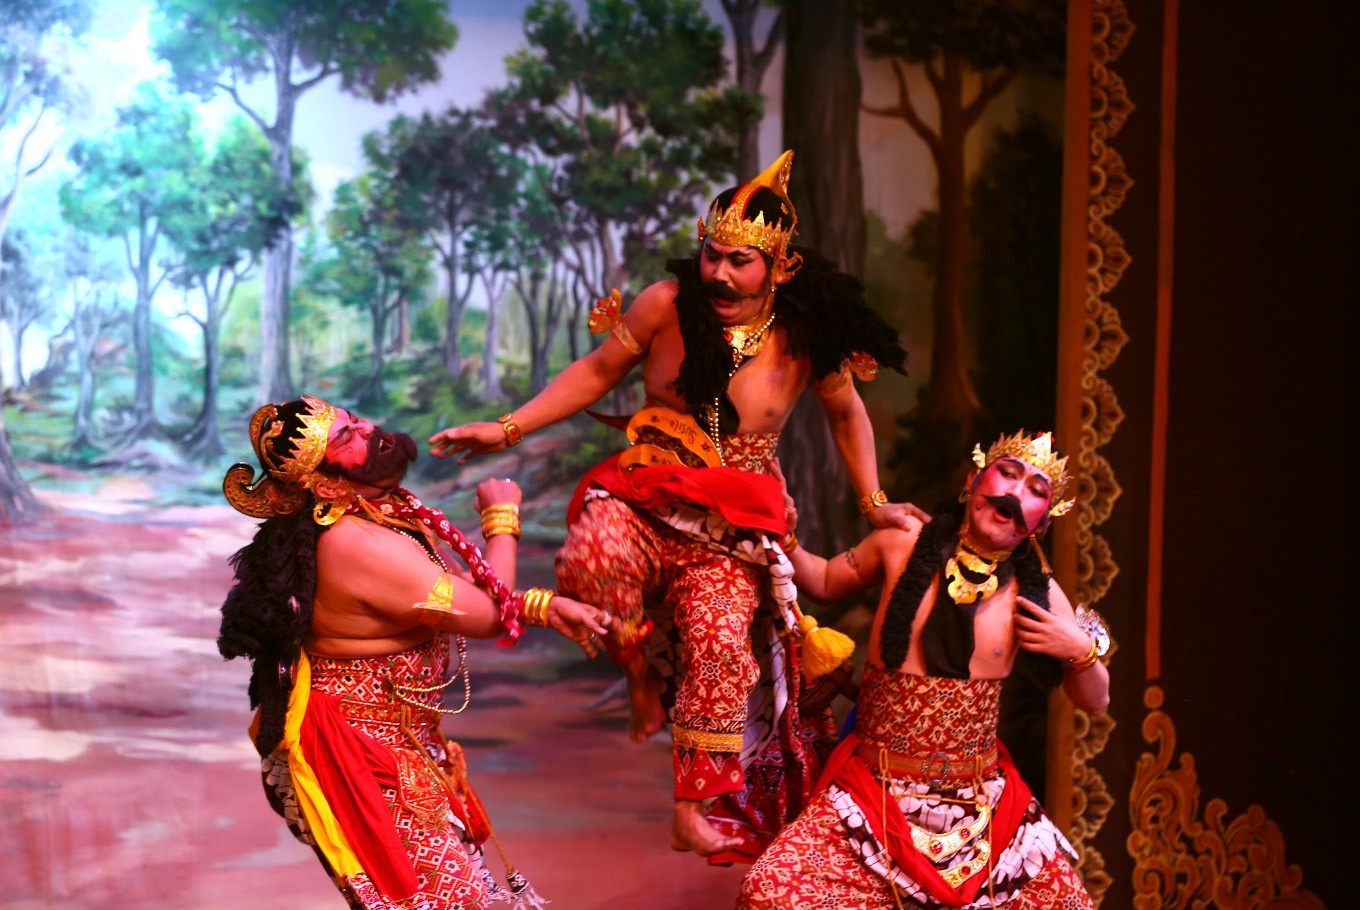 wayang orang bharata strives to preserve traditional culture art